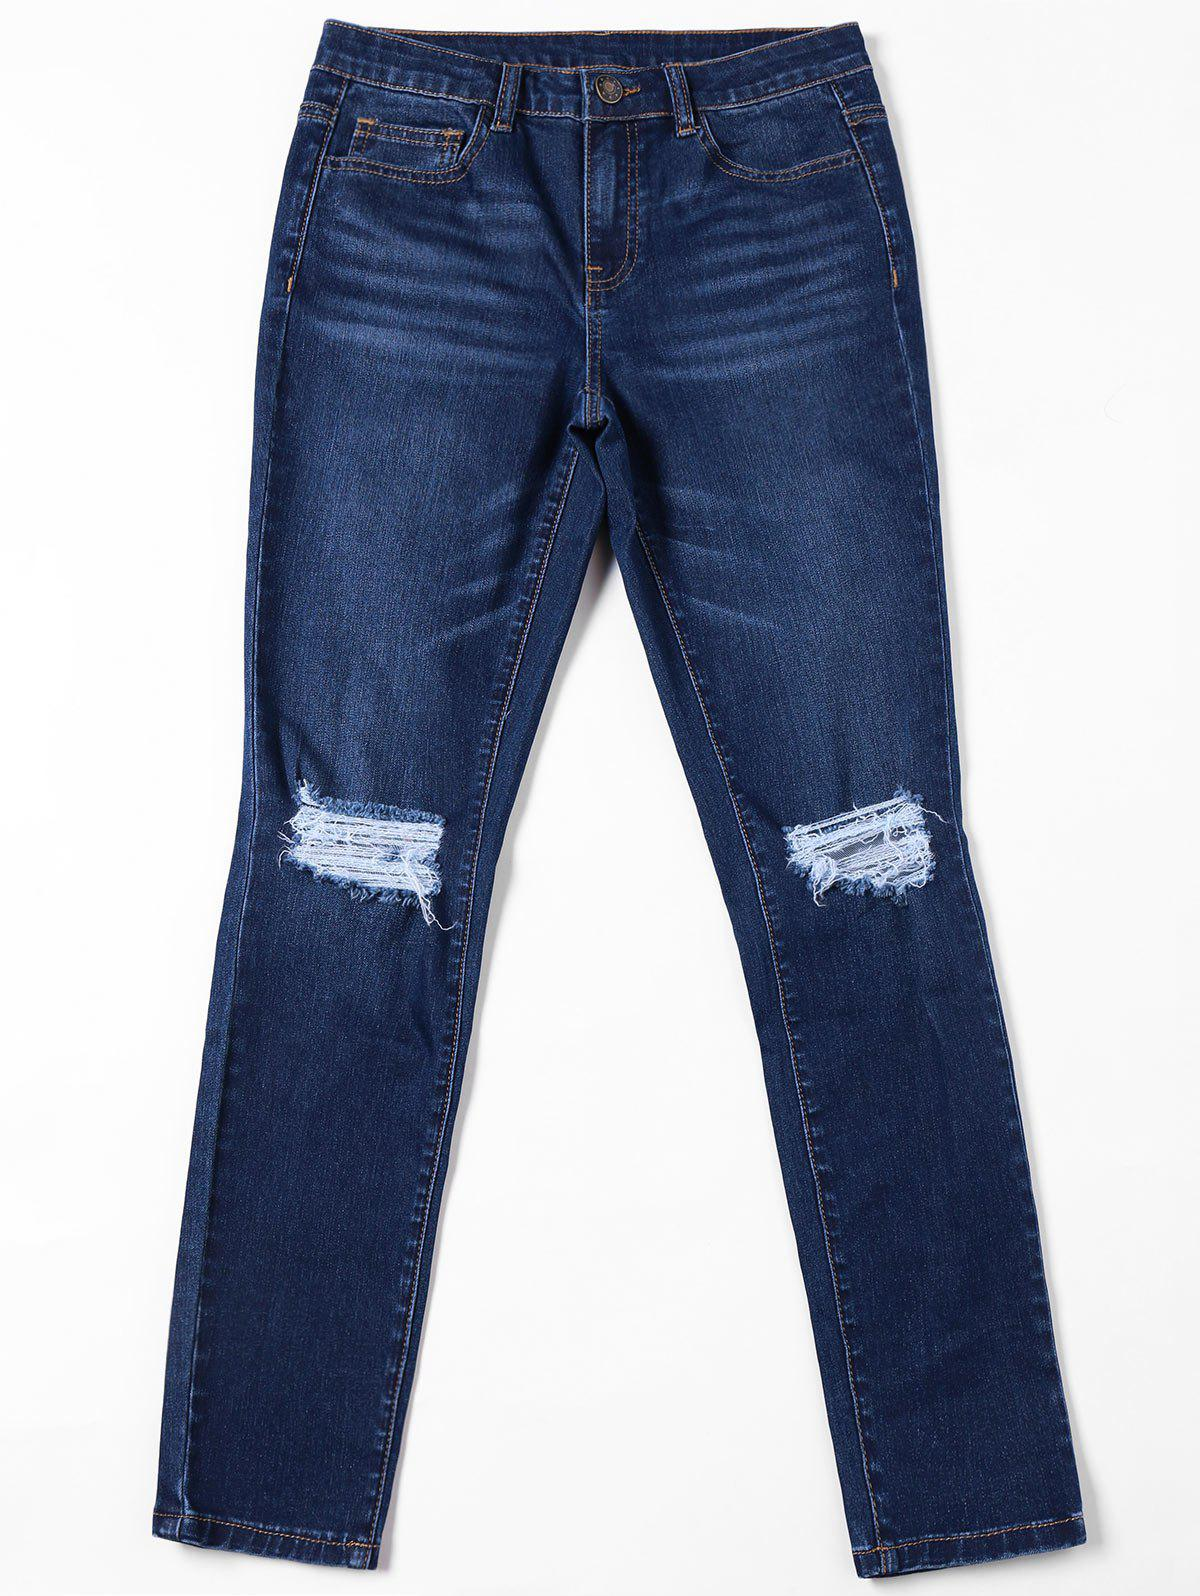 Cat's Whisker Ripped Jeans with Pockets - DENIM BLUE 2XL